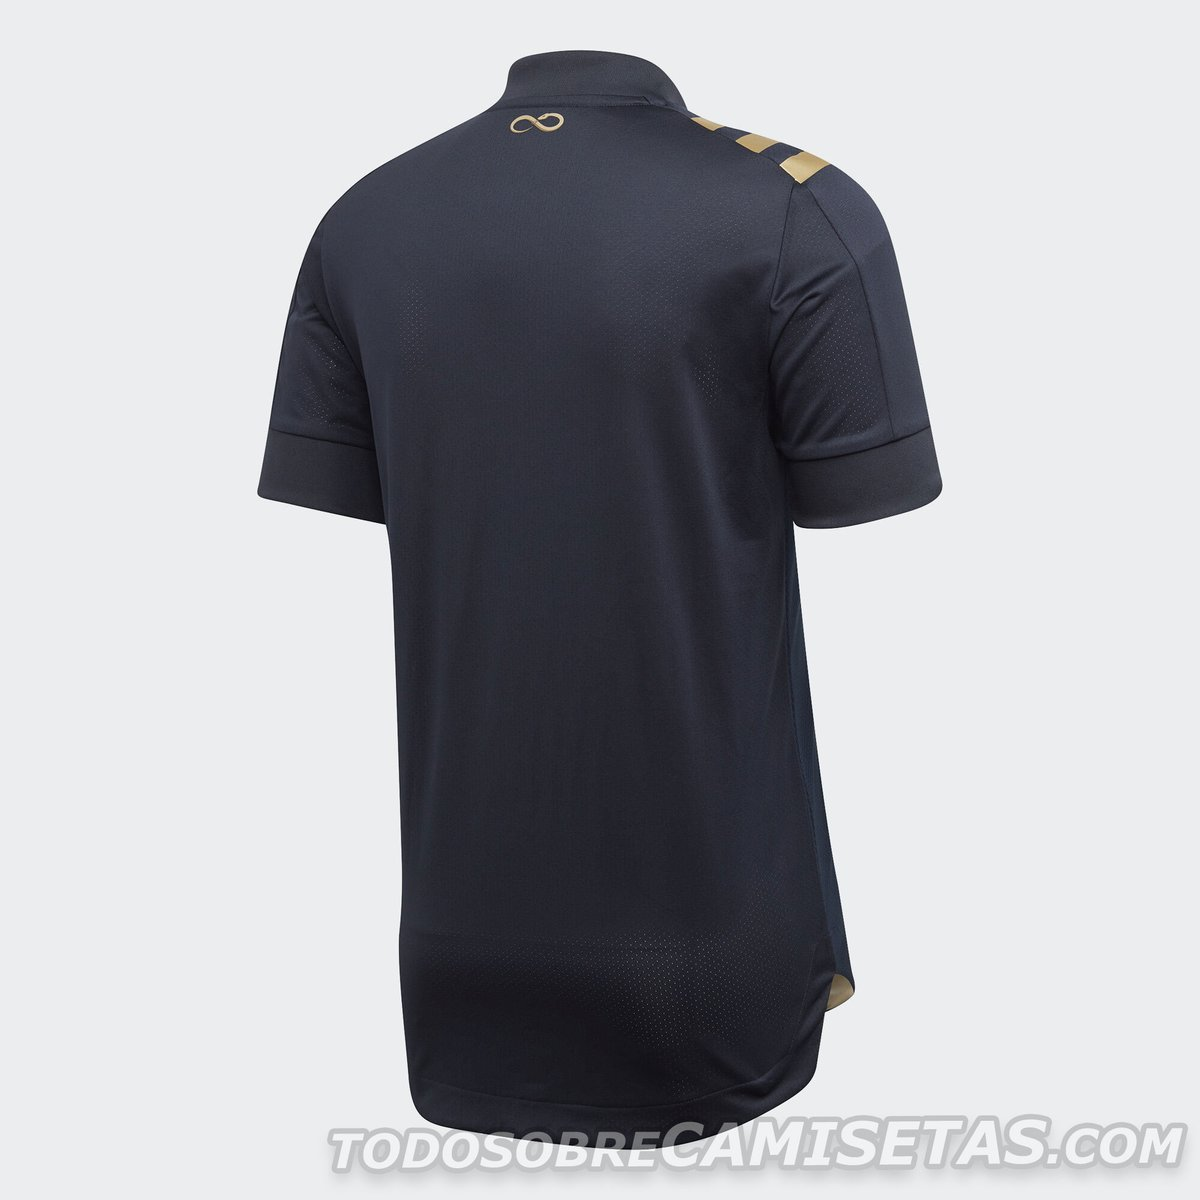 Philadelphia Union 2020 home kit